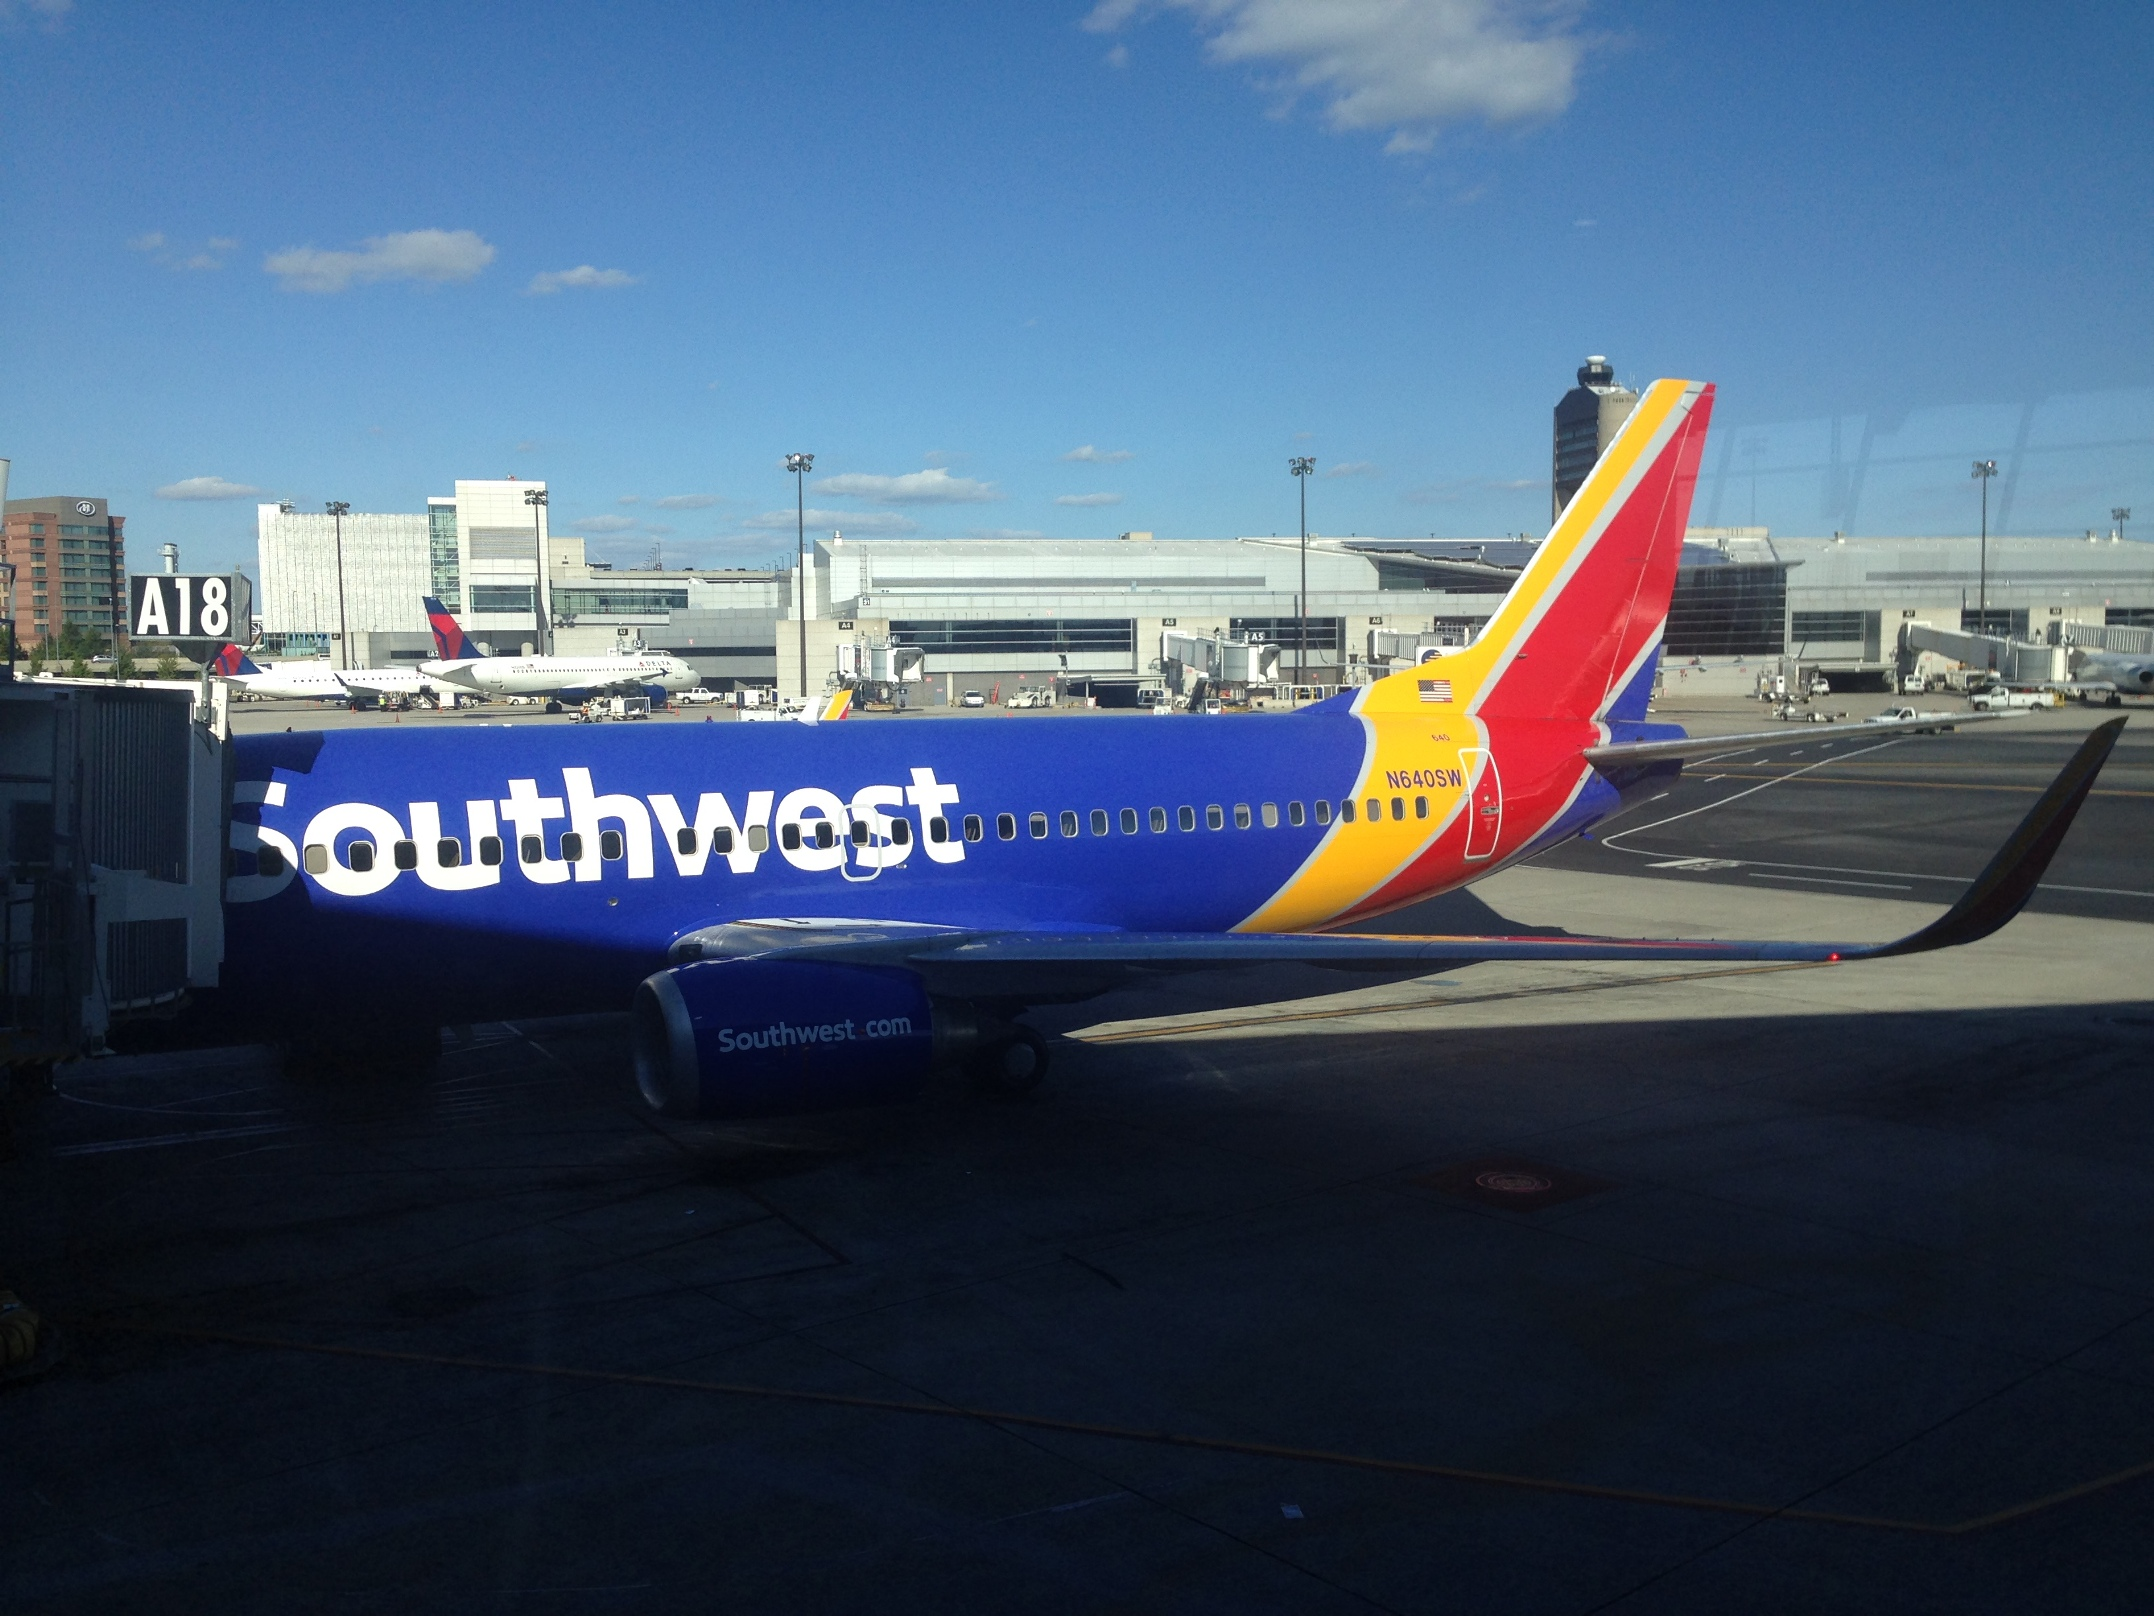 Southwest Airlines_Flight Experience_Baltimore-Boston_Oct 2015